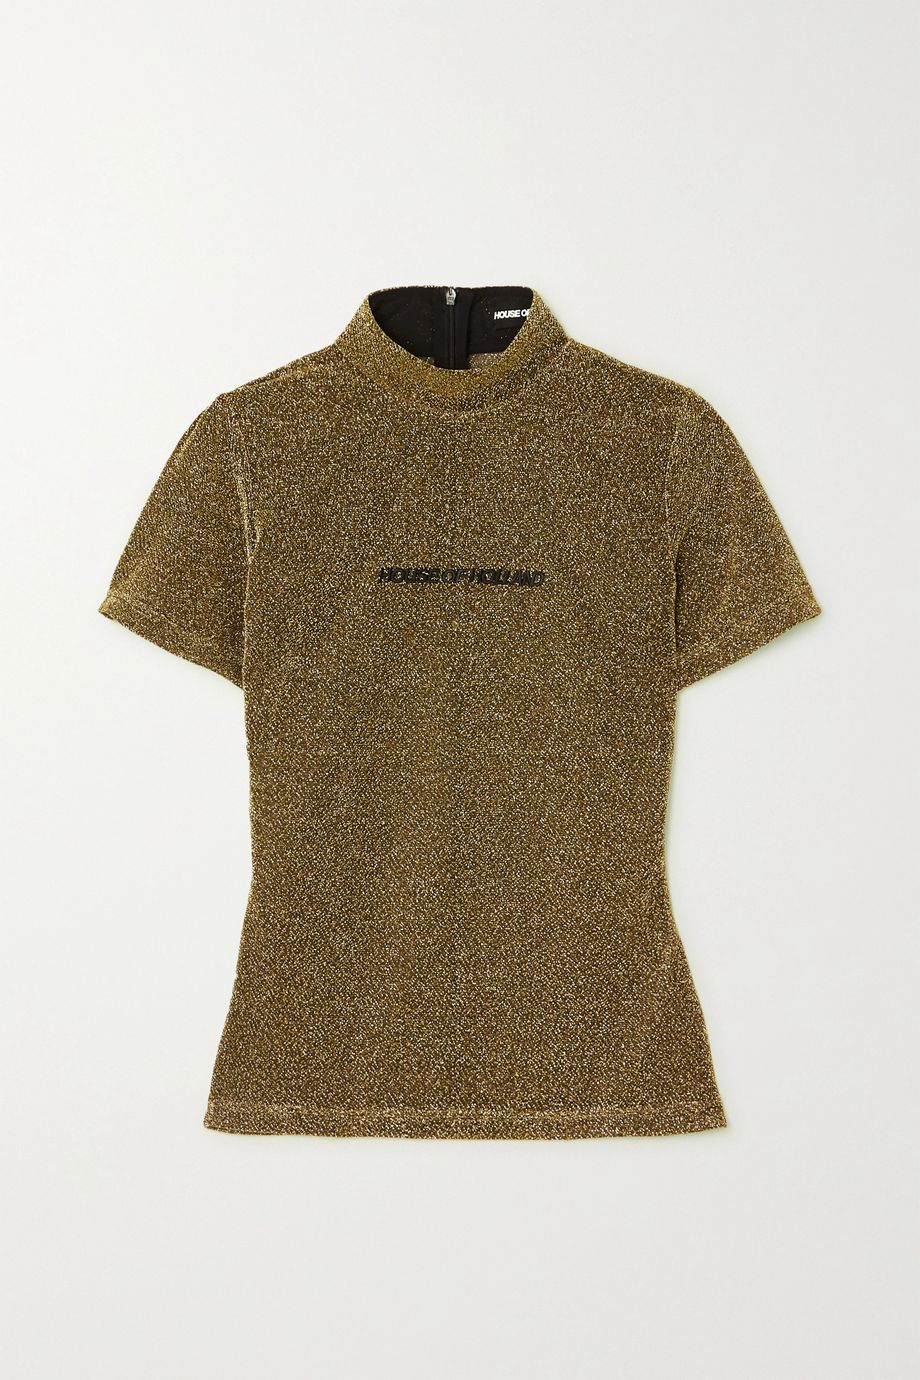 House of Holland Embroidered metallic knitted T-shirt